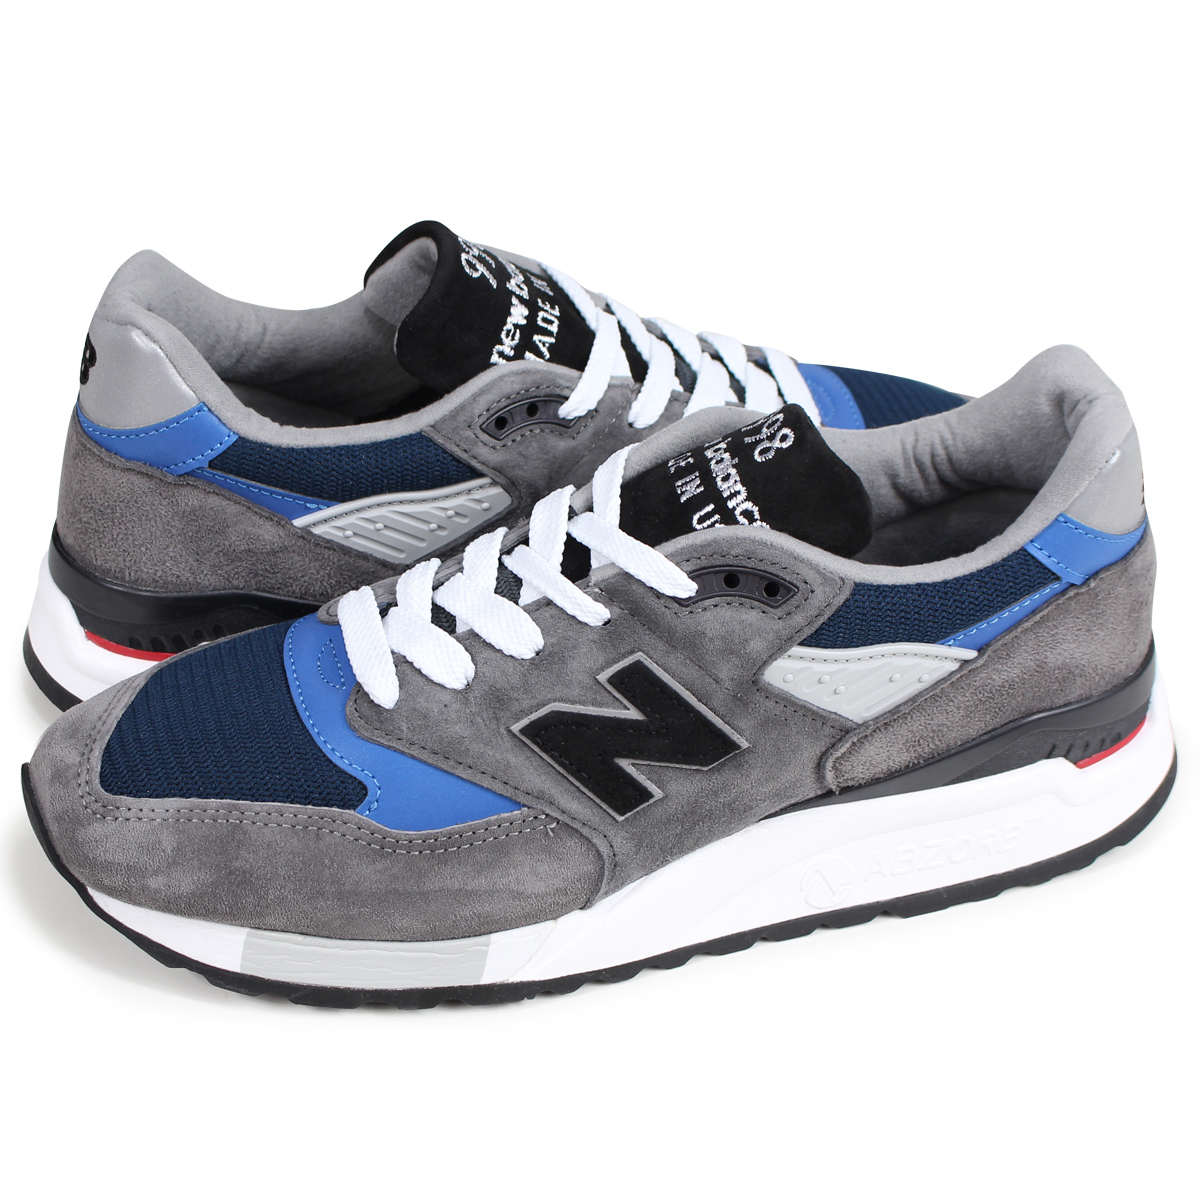 check out f4009 b5525 new balance M998NF New Balance 998 men's sneakers D Wise MADE IN USA gray  [load planned Shinnyu load in reservation product 9/6 containing]